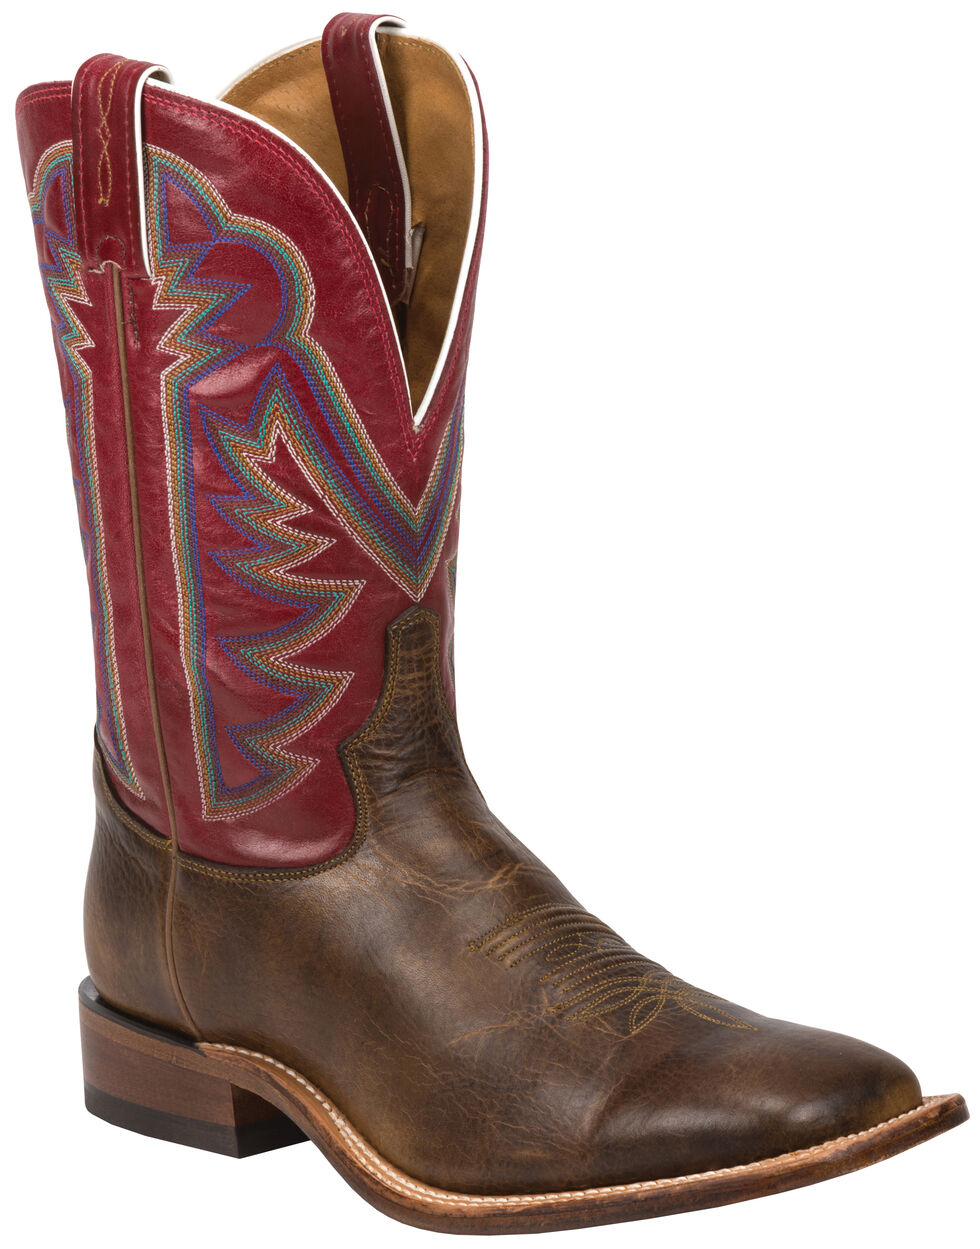 Tony Lama Tan Crush Blaze Americana Cowboy Boots - Square Toe , Tan, hi-res